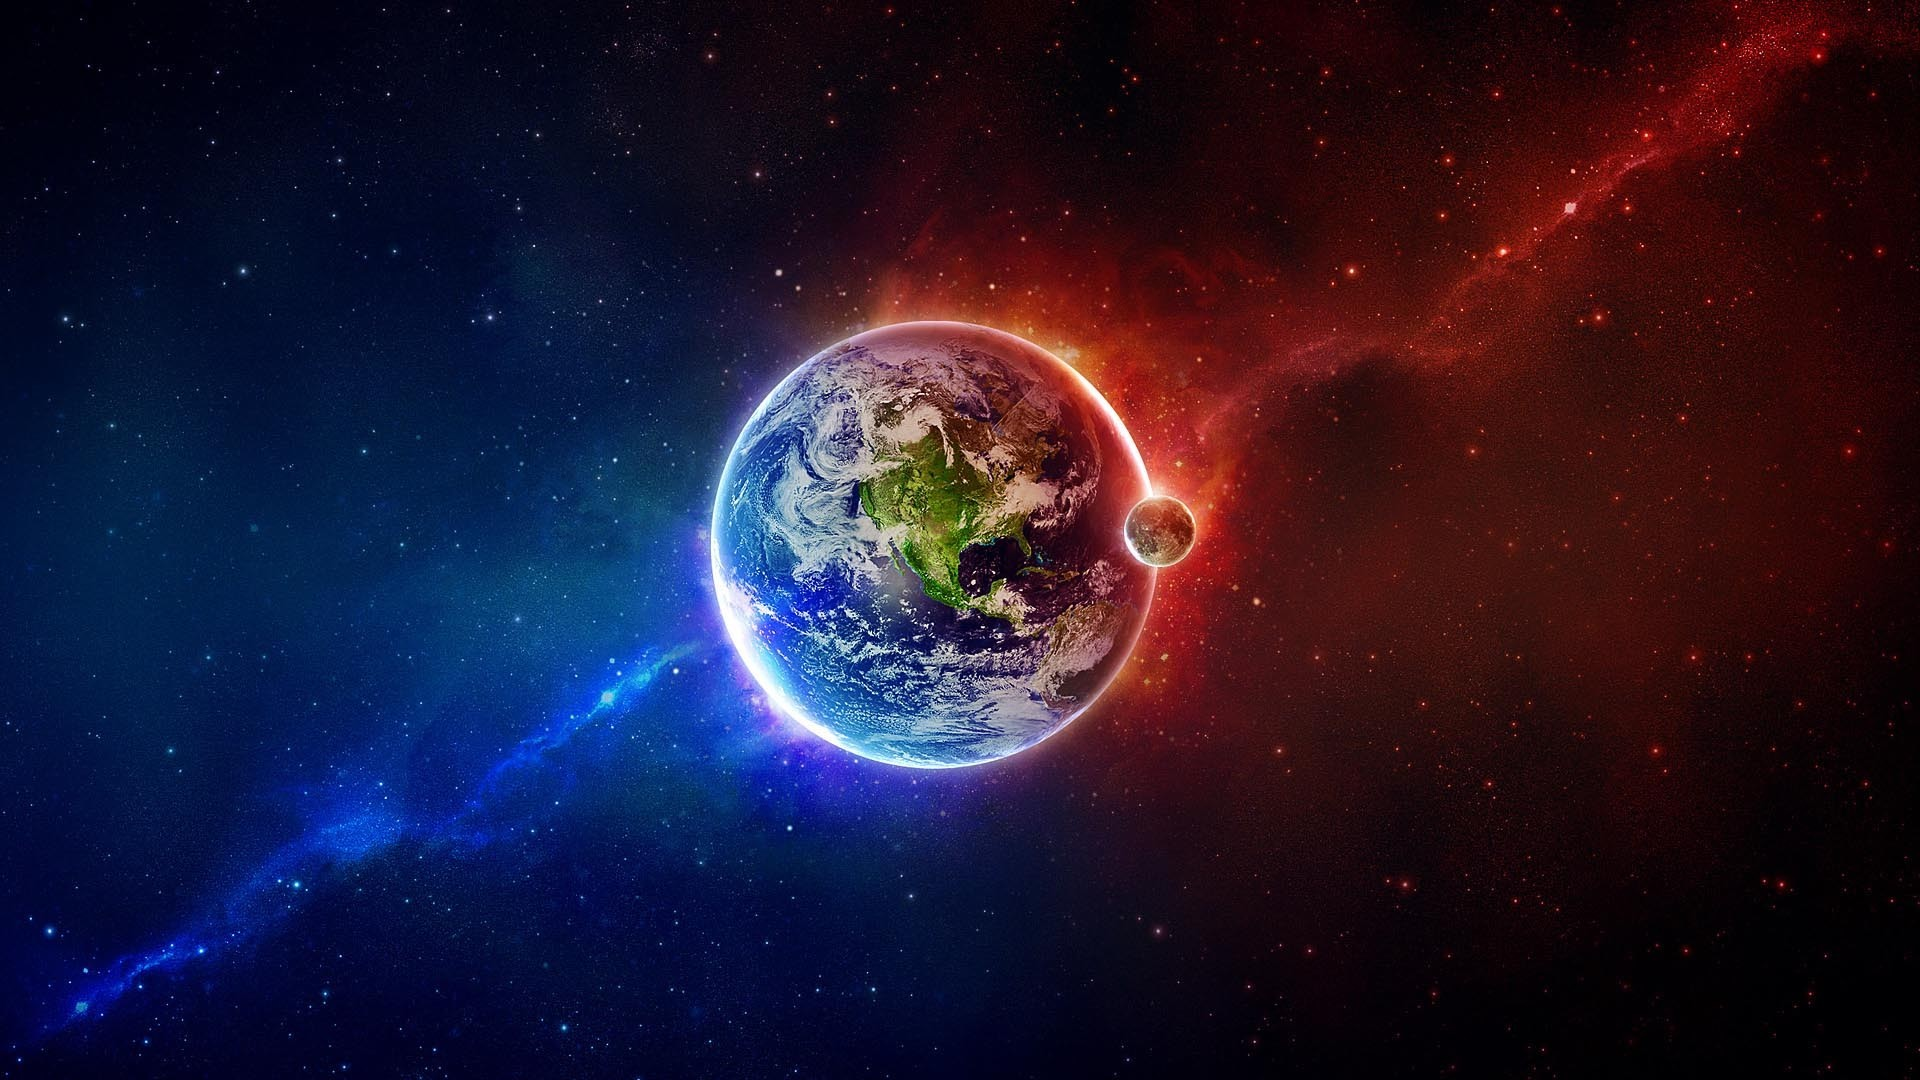 High resolution wallpapers · 1920 x 1080 px Cool earth space backround by  Edward Robertson for – TrunkWeed.com